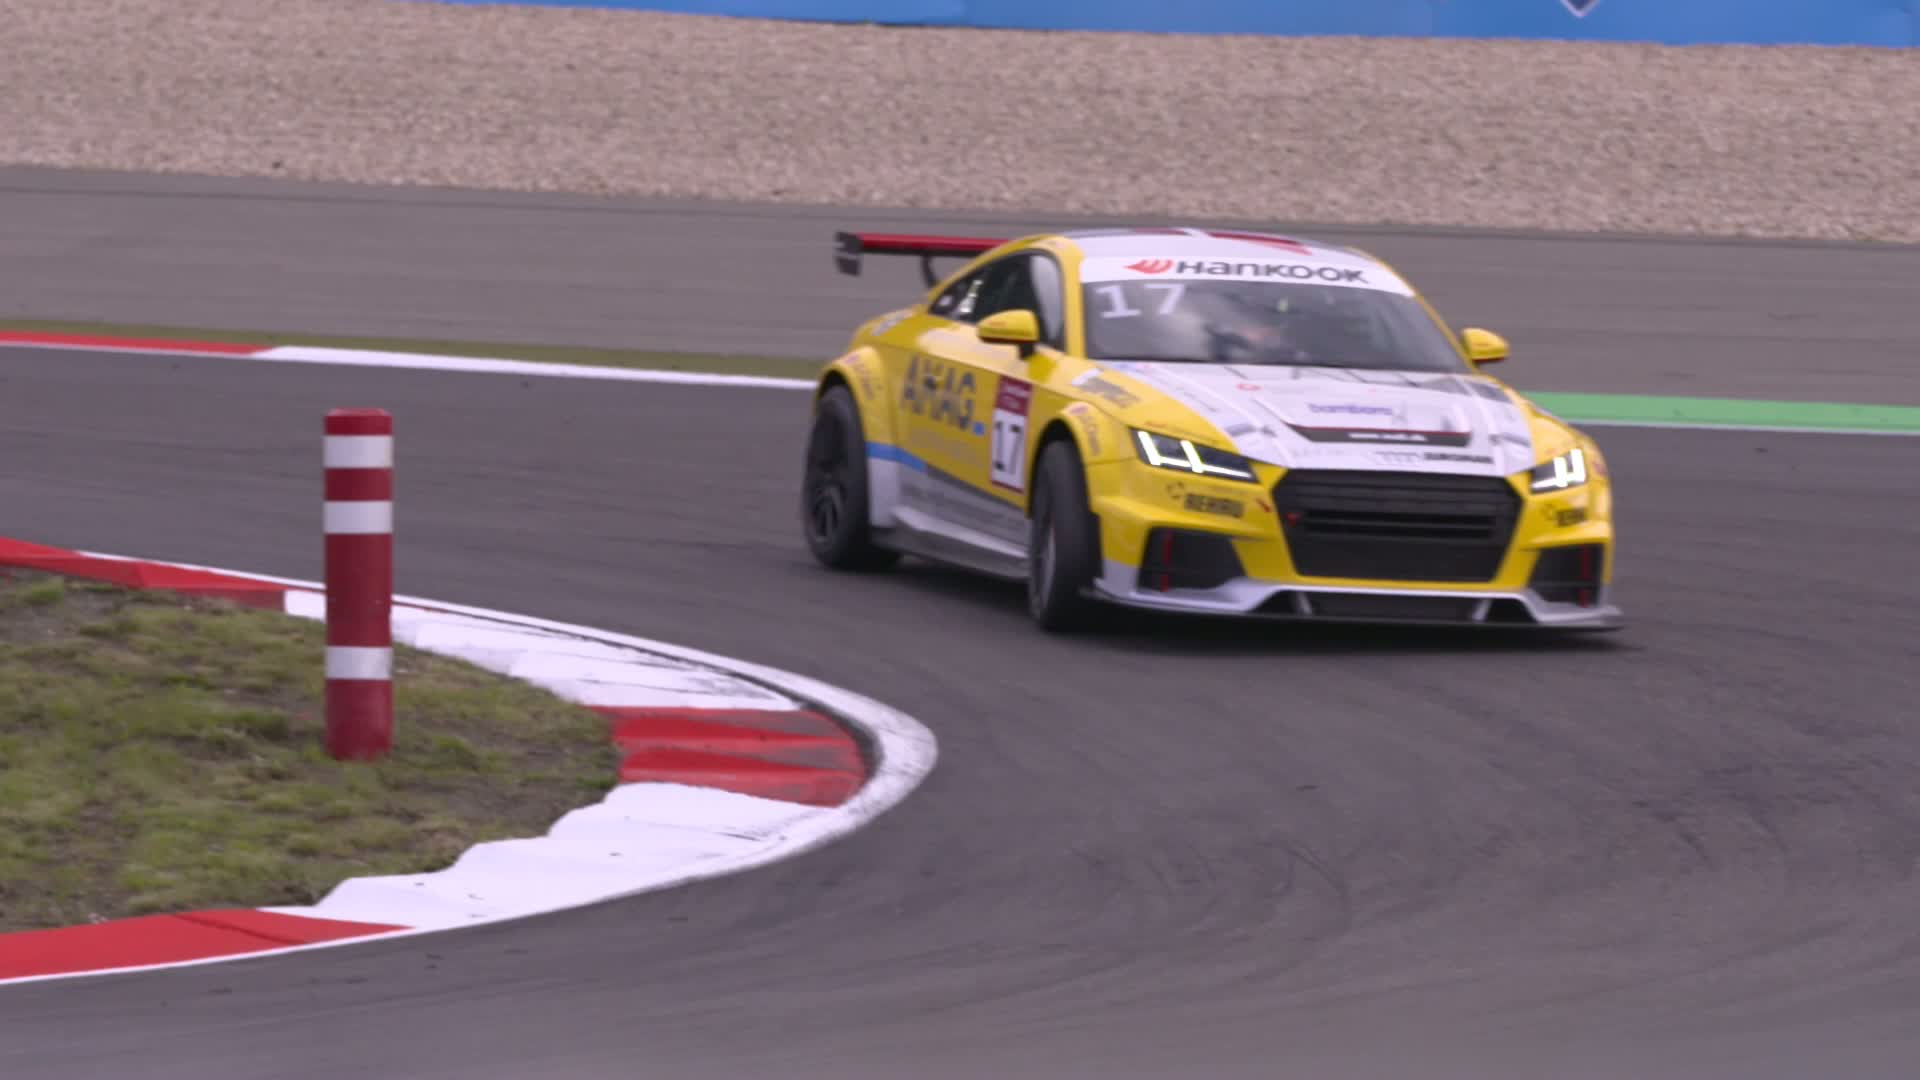 60 Seconds of Audi Sport 83/2015 - TT Cup Nürburgring, Preview